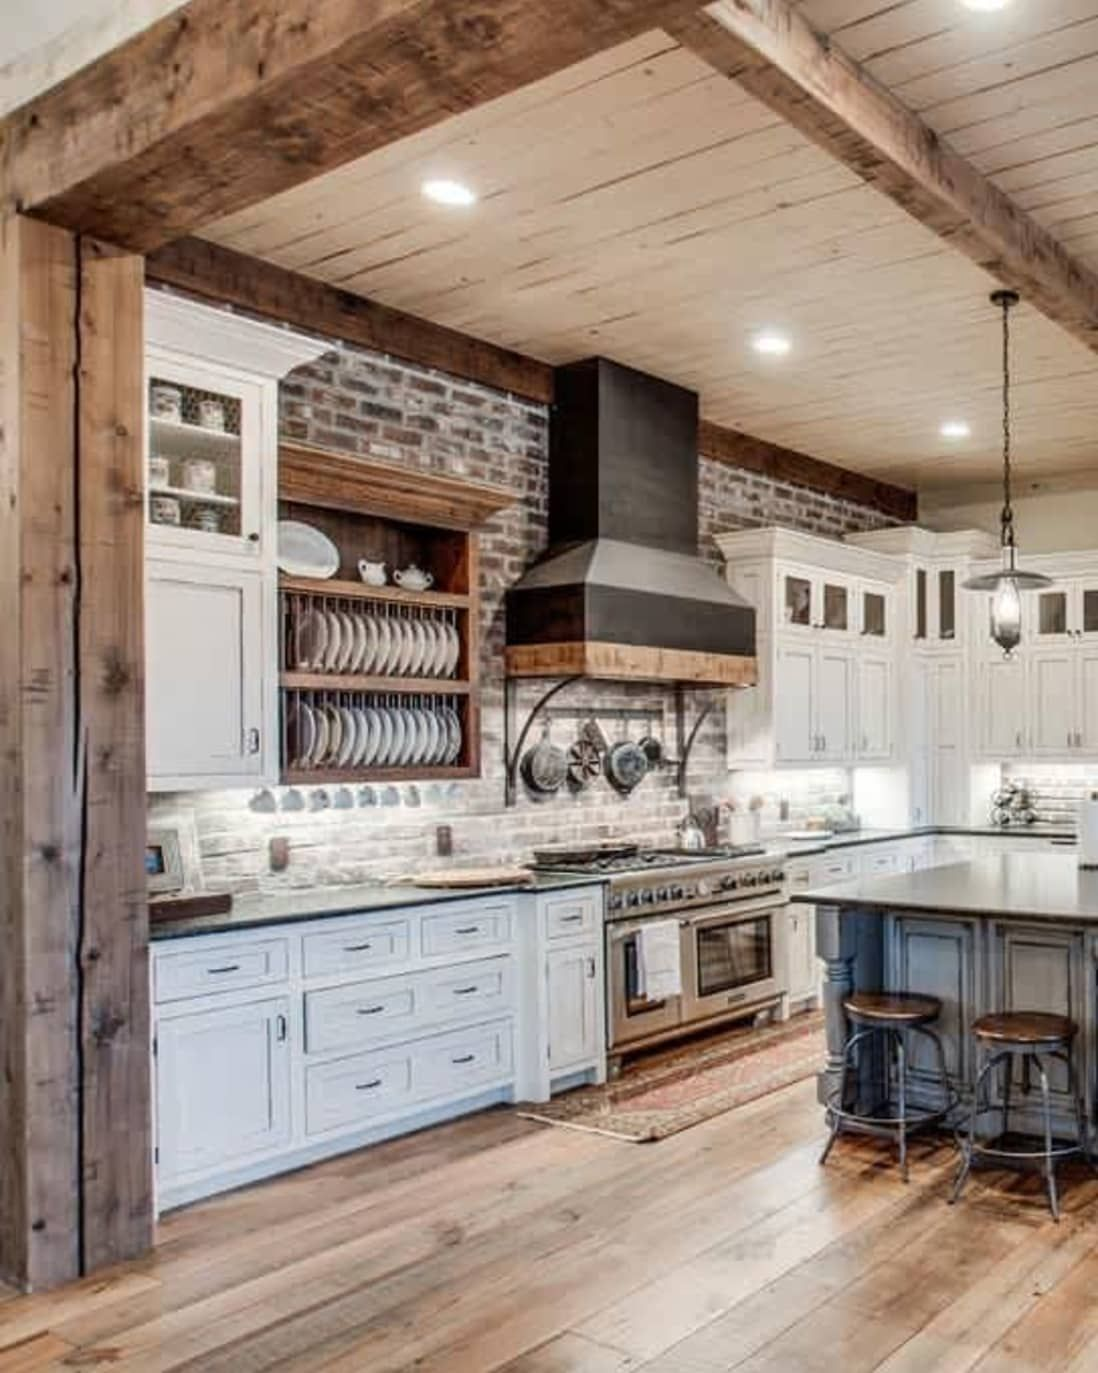 Miley Cyrus Buys a Modern Farmhouse in Her Tenness